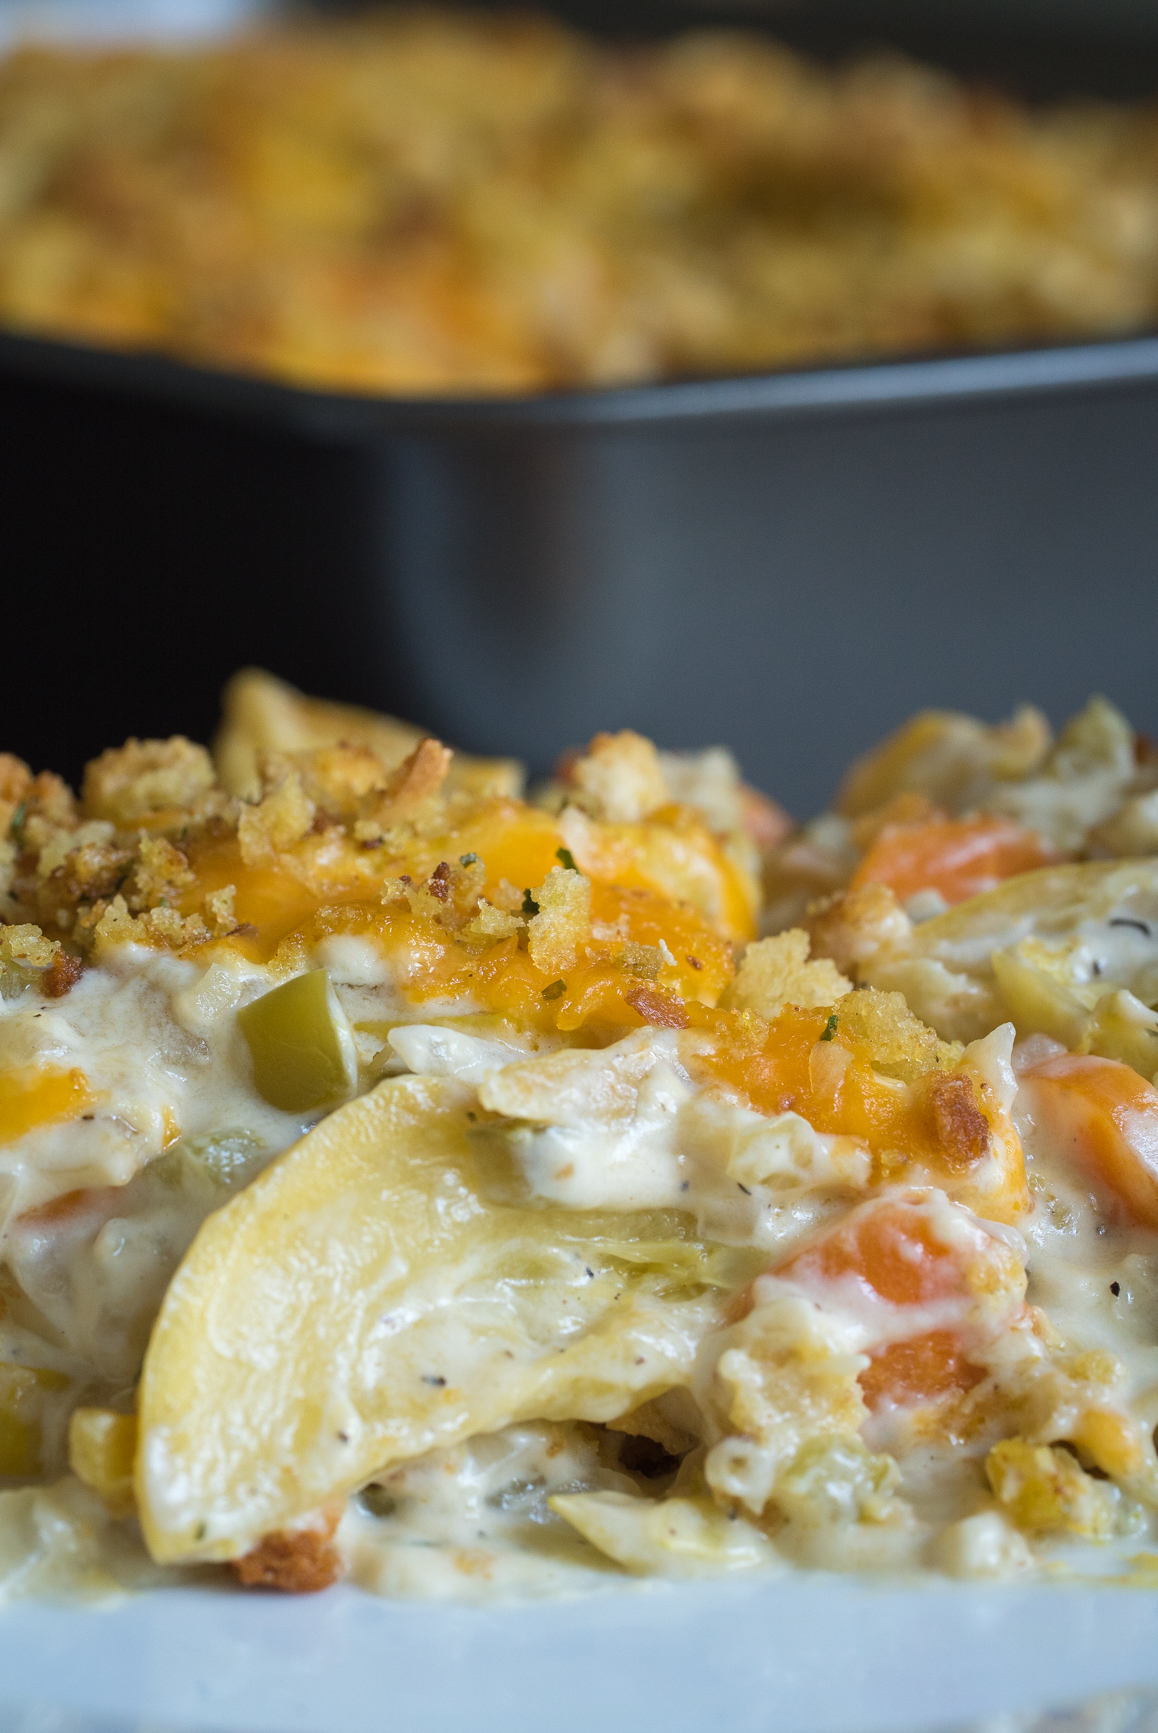 Cheesy Squash Casserole Vertical (3 of 4)